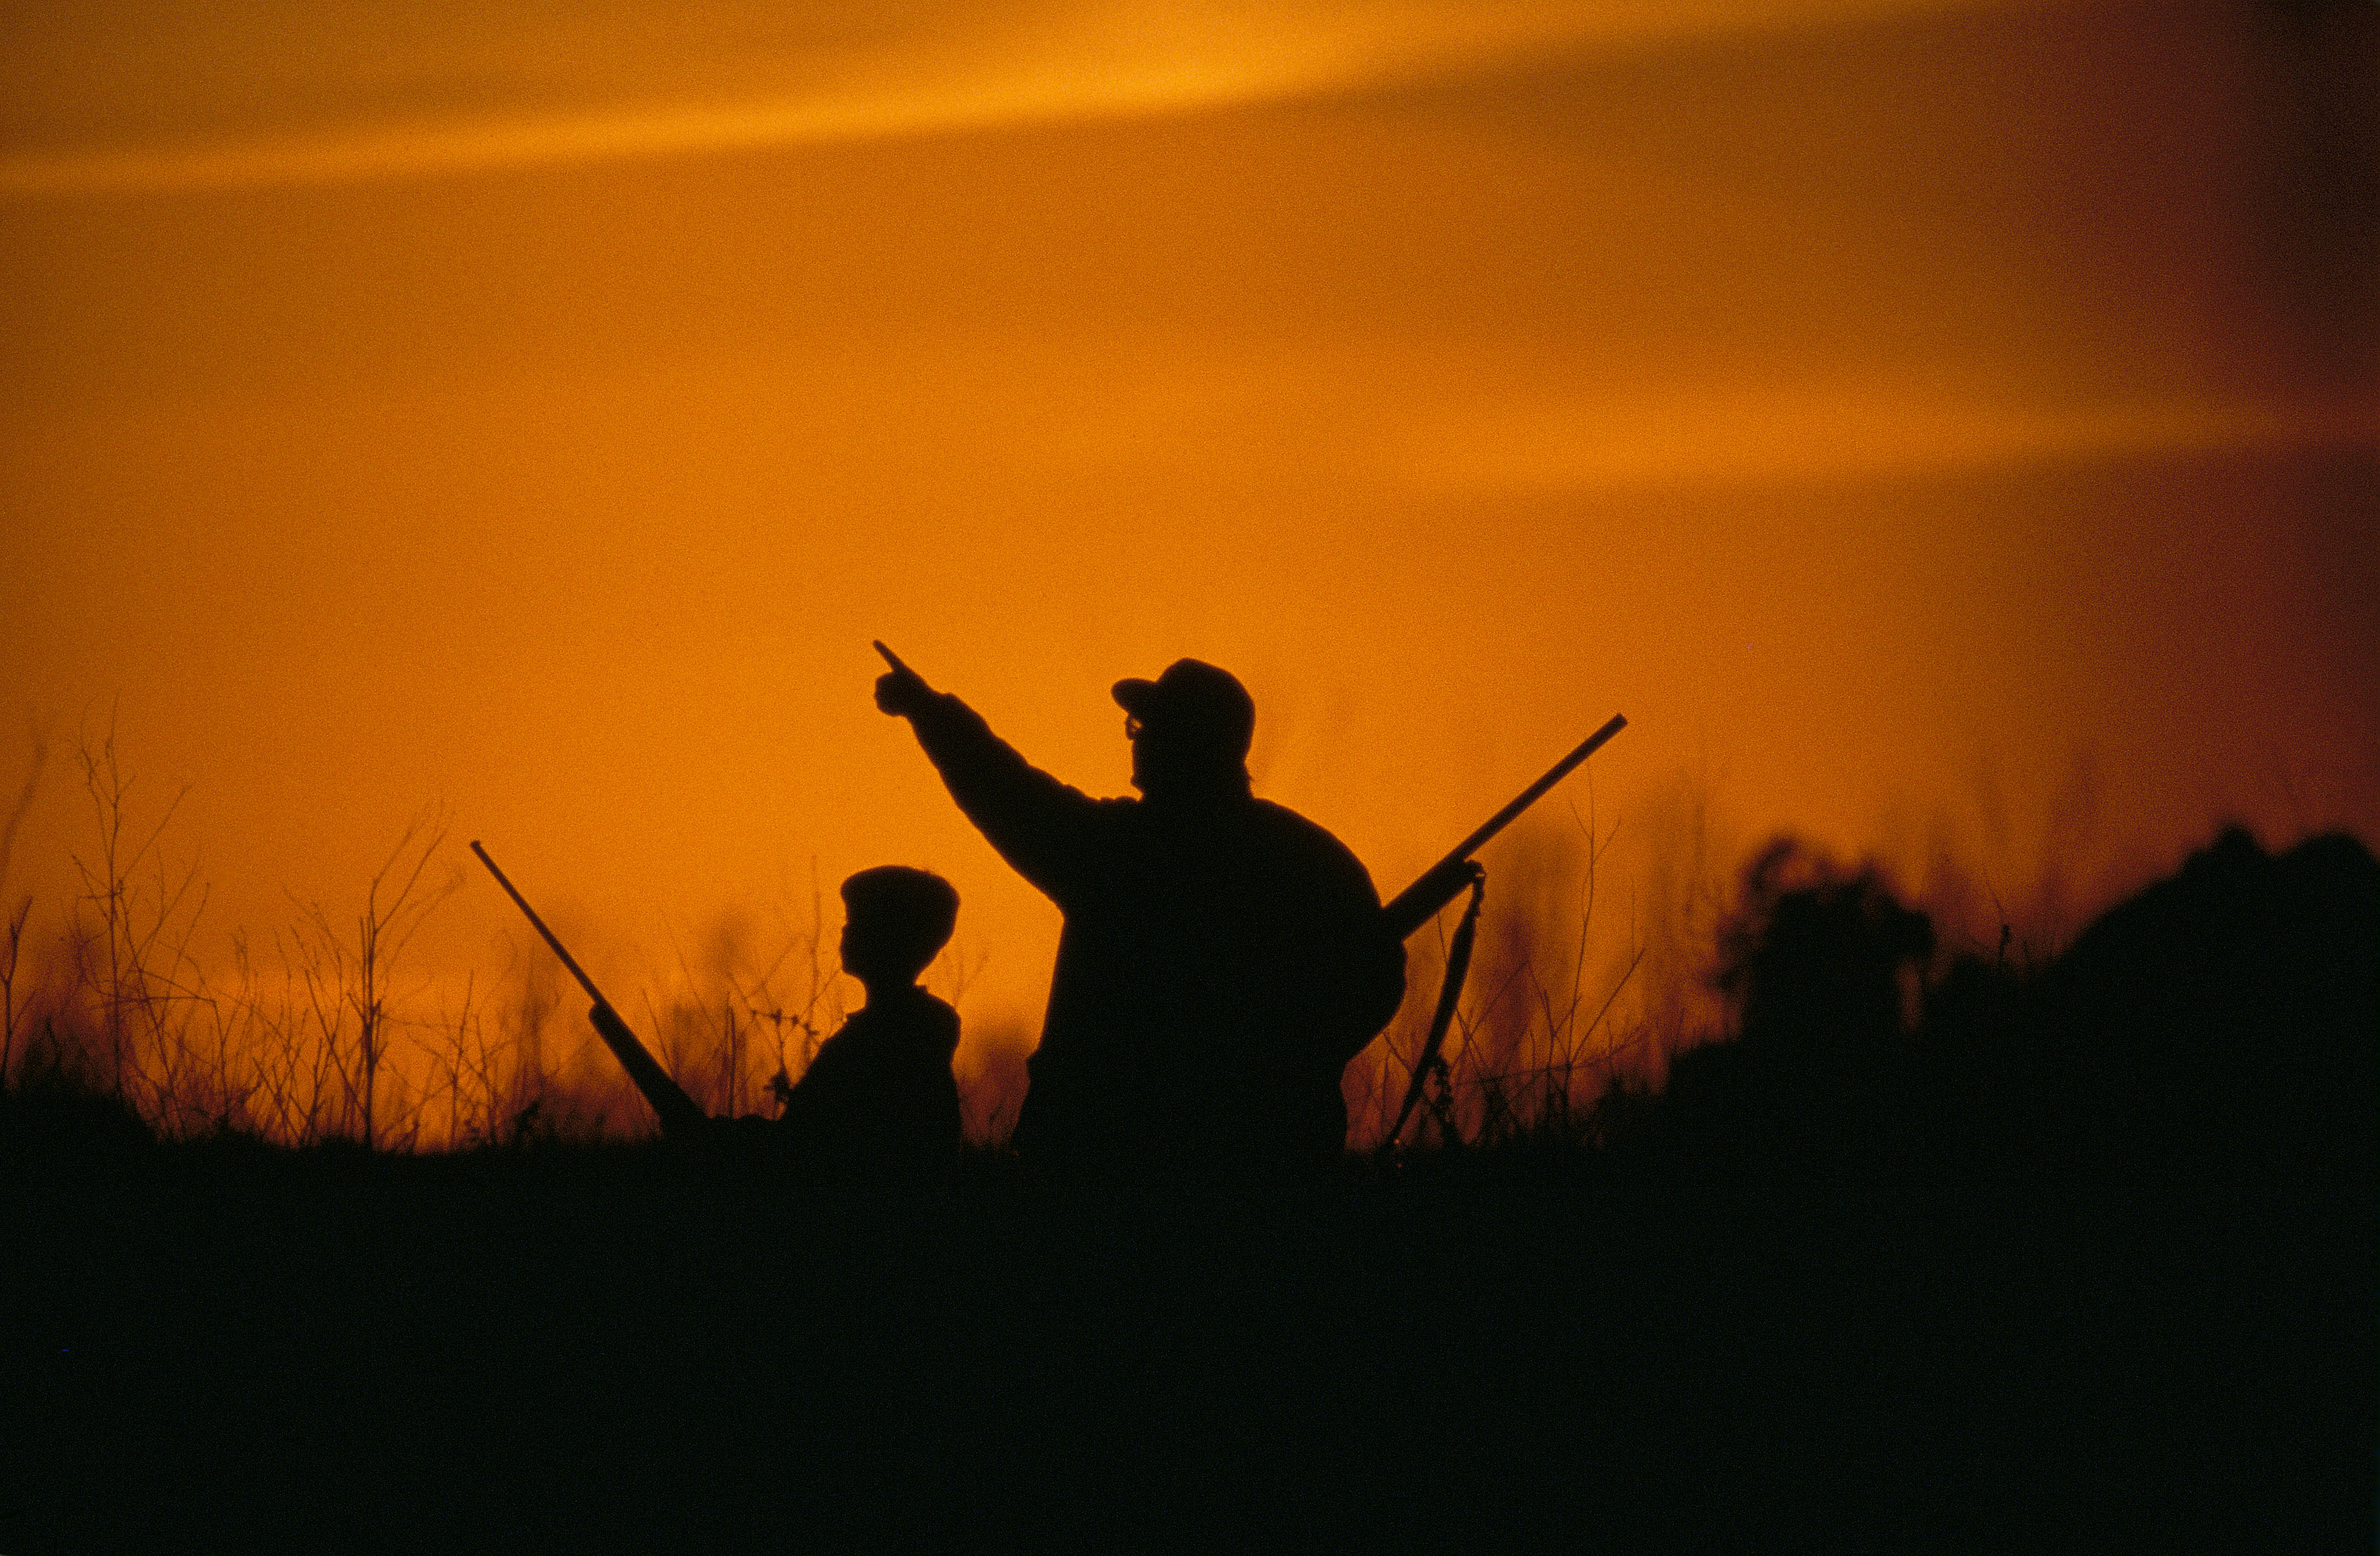 Image of two hunters against a sunset-colored sky. United States FIsh and Wildlife Service